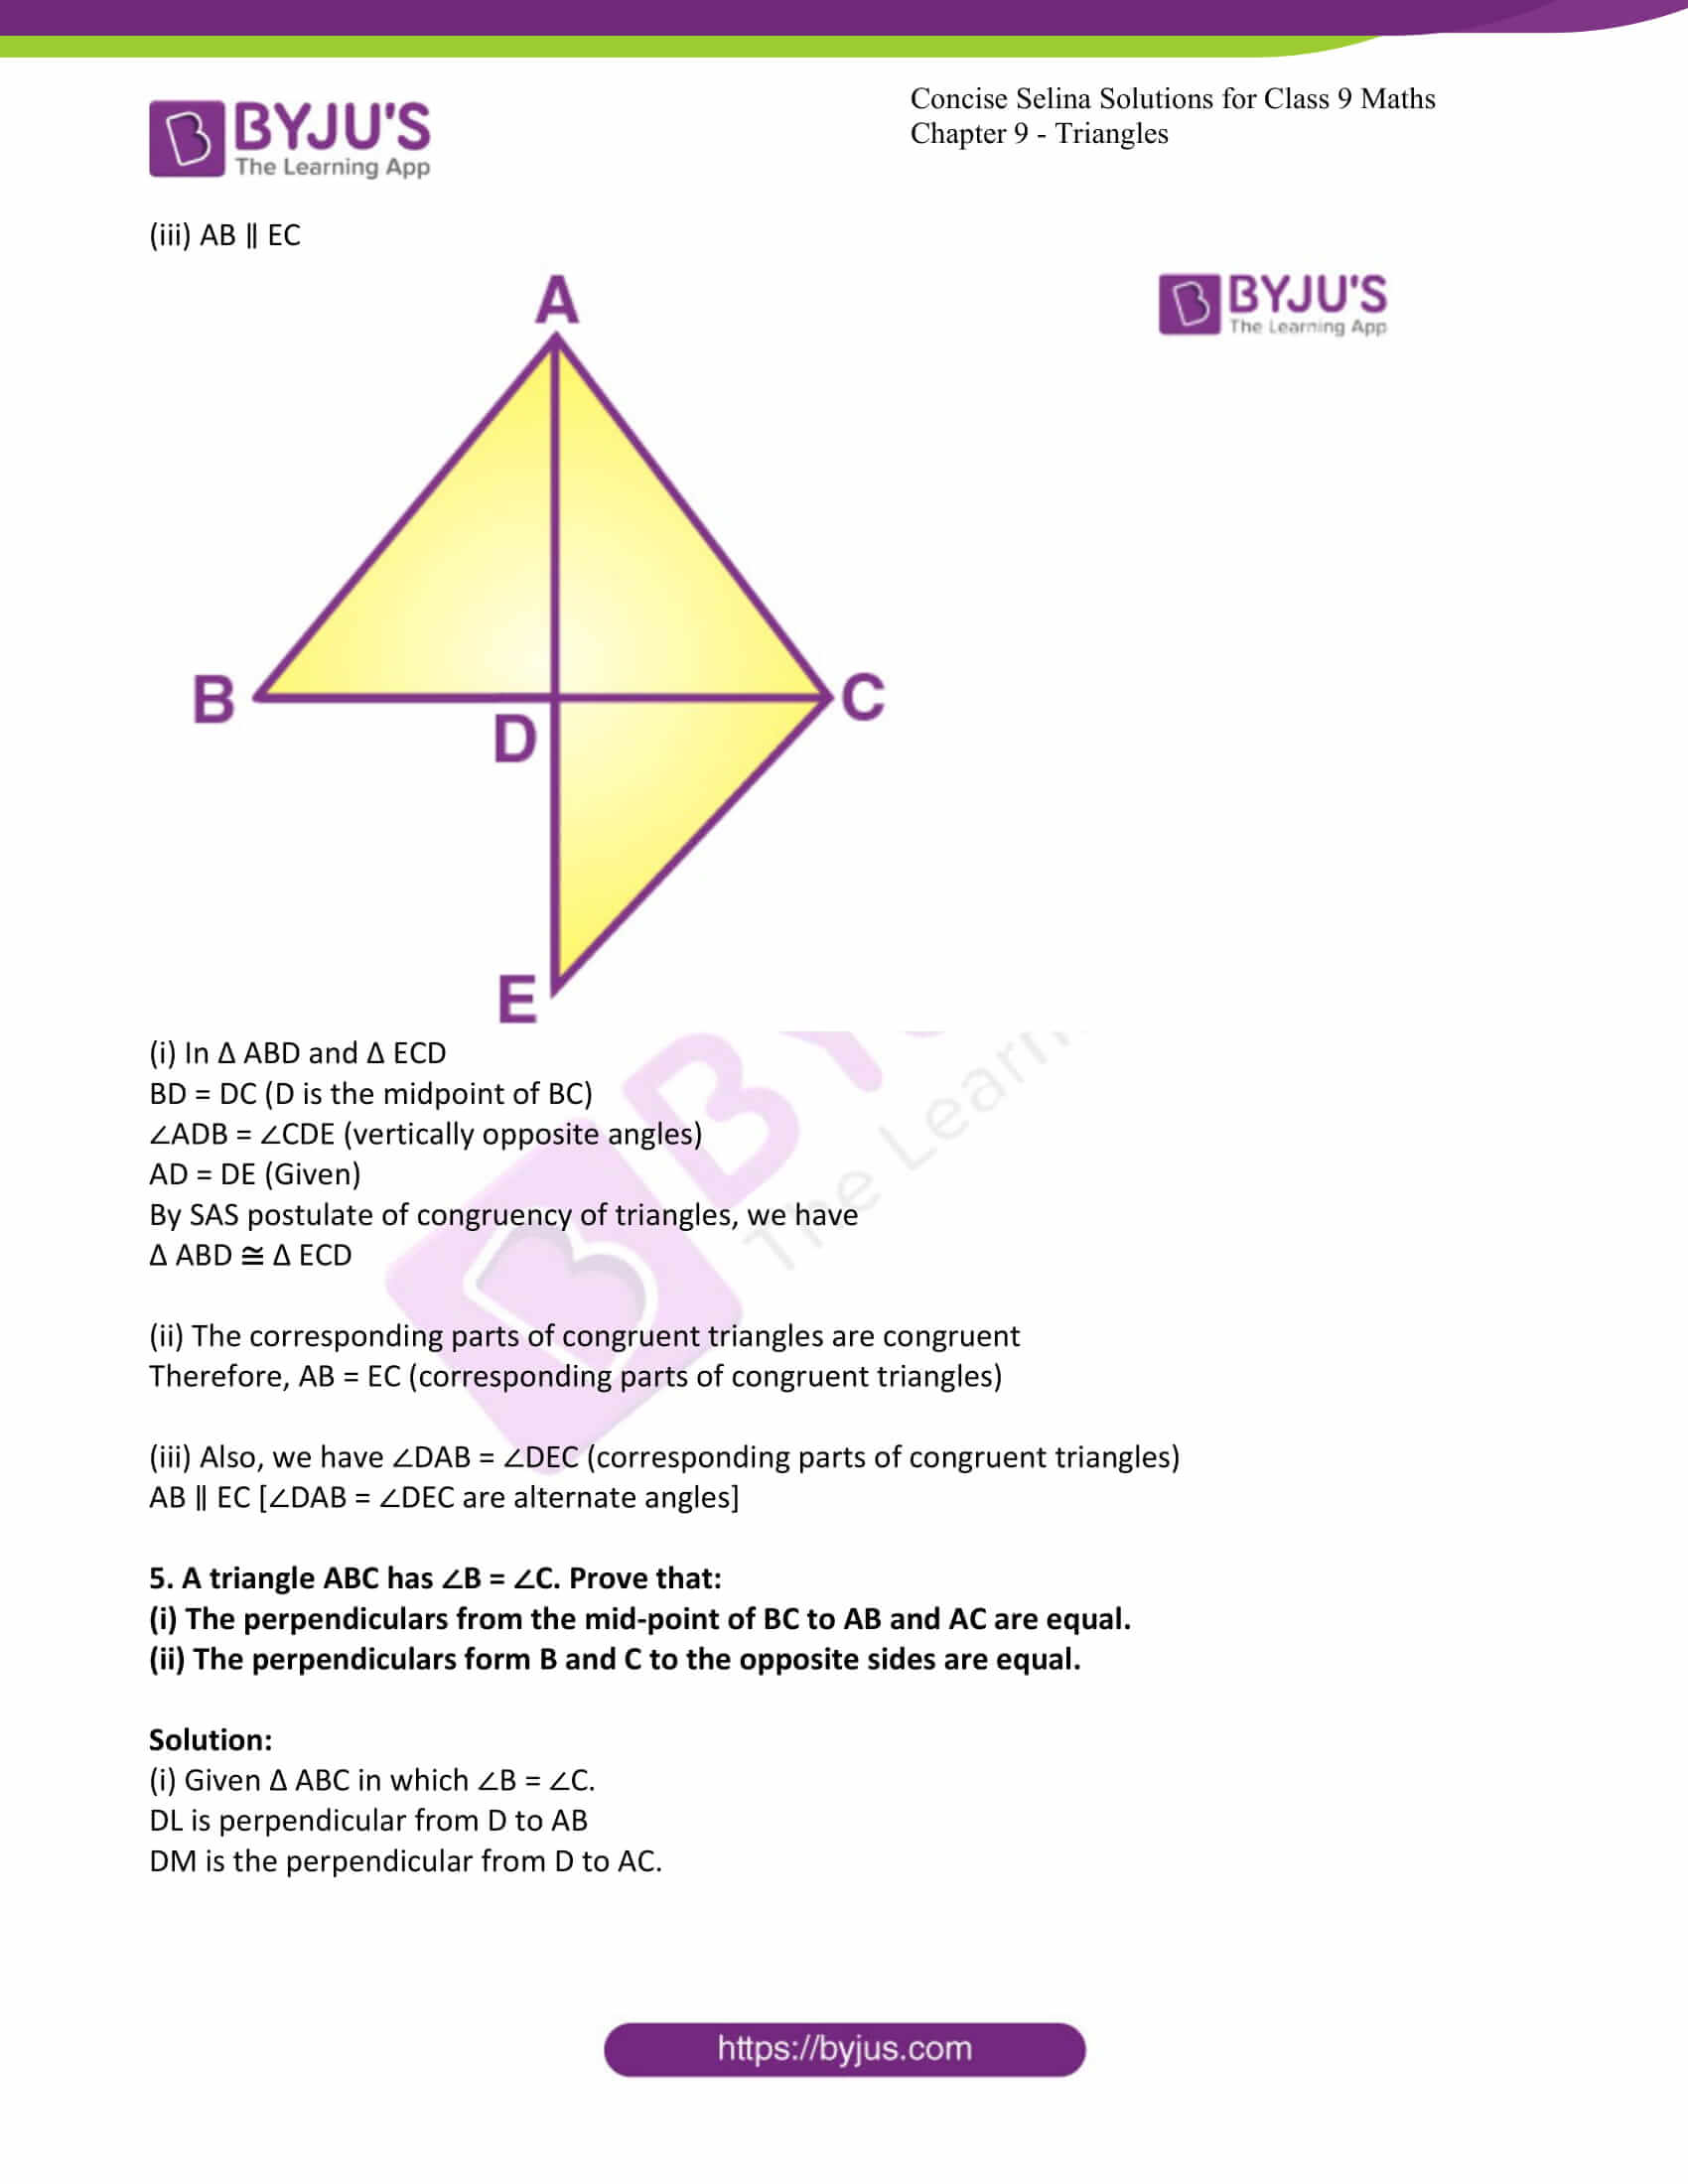 icse class 9 maths may10 selina solutions chapter 9 triangles 08